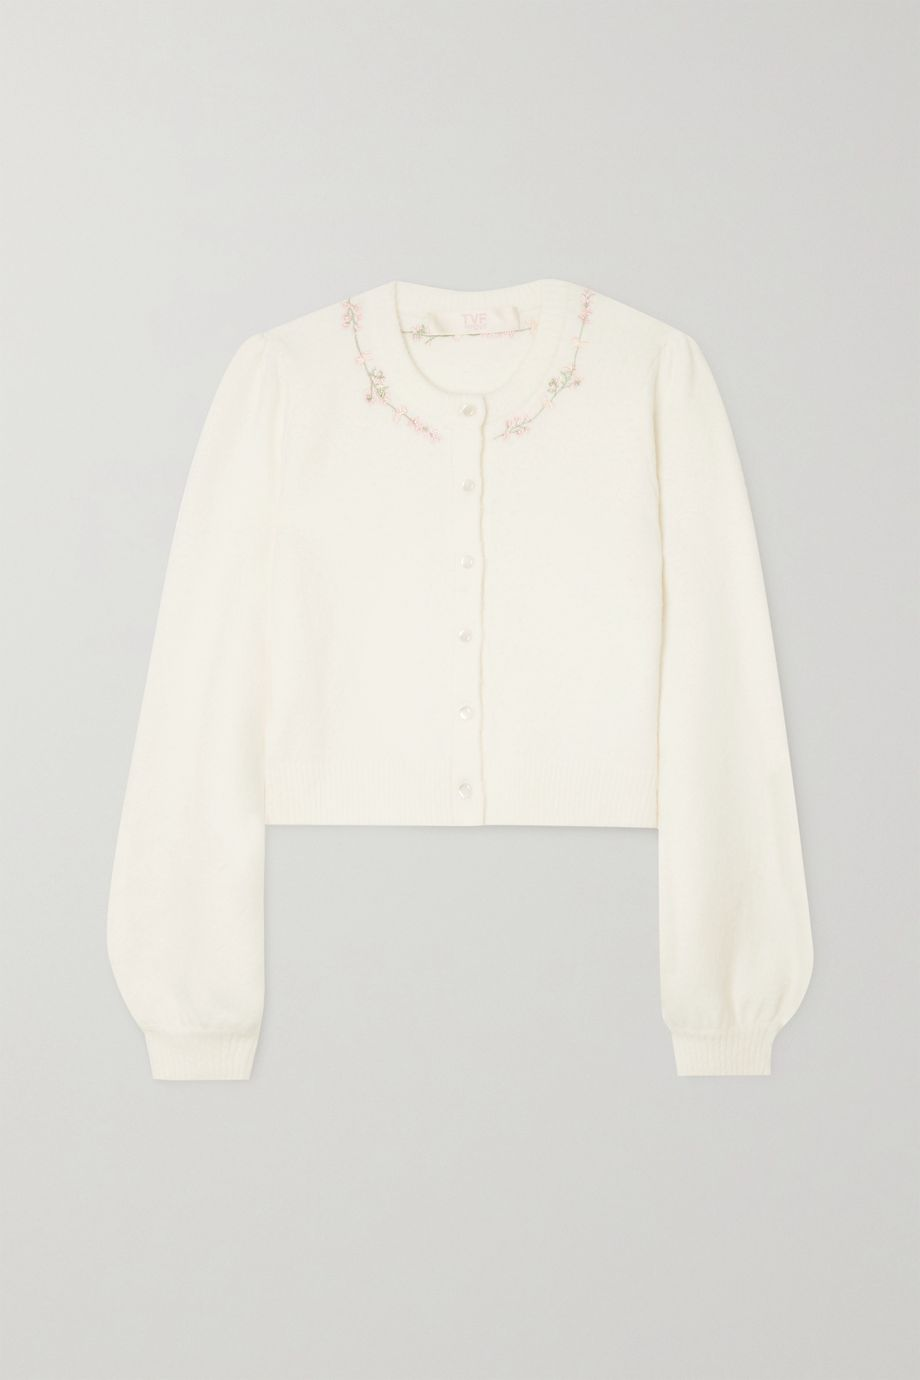 TVF Blondie embroidered knitted cardigan